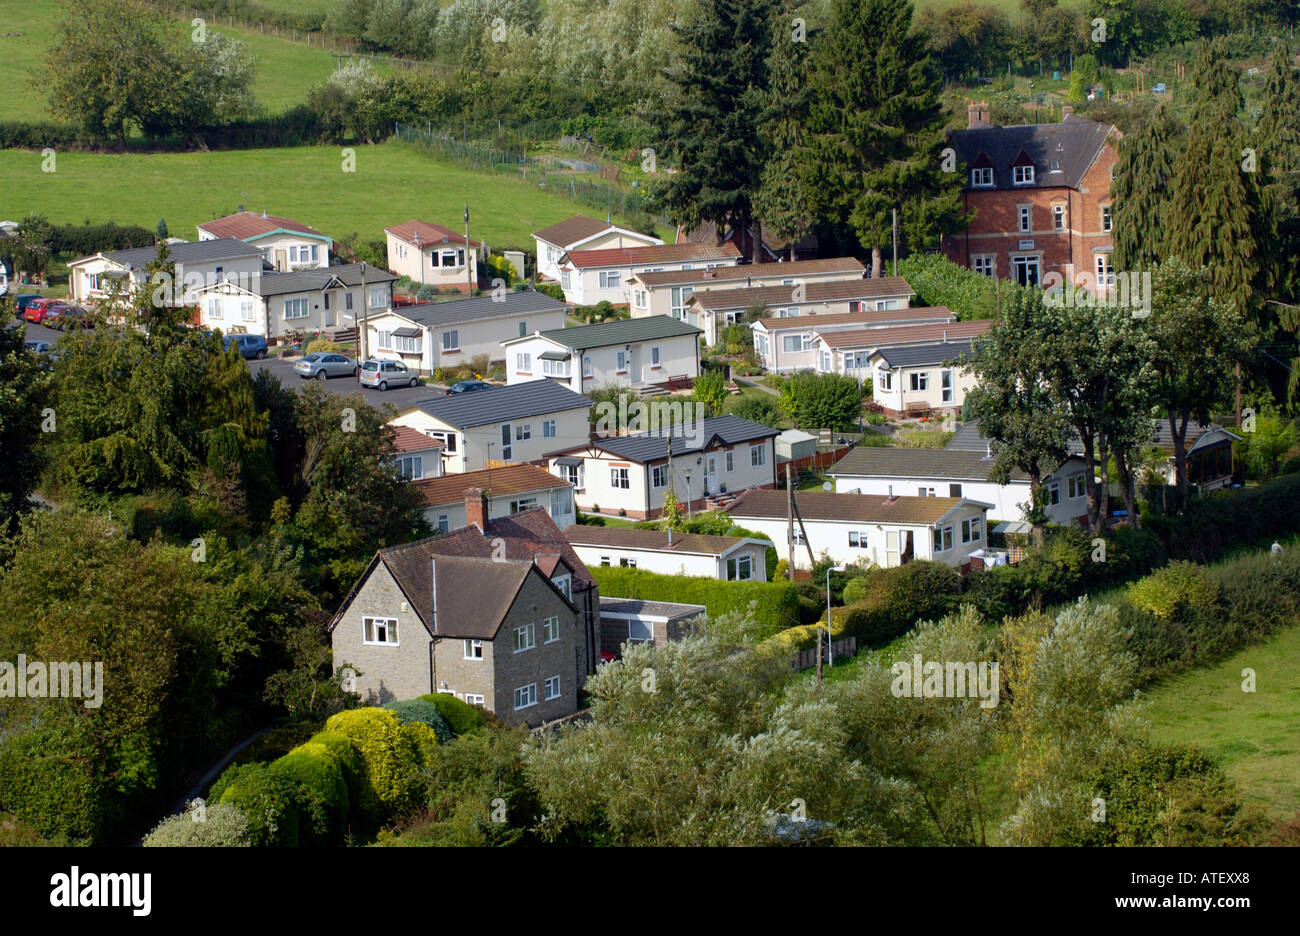 Small mobile home park in countryside on outskirts of historic town on countryside boston homes, countryside landscaping, countryside cottages, countryside churches, countryside sheds,